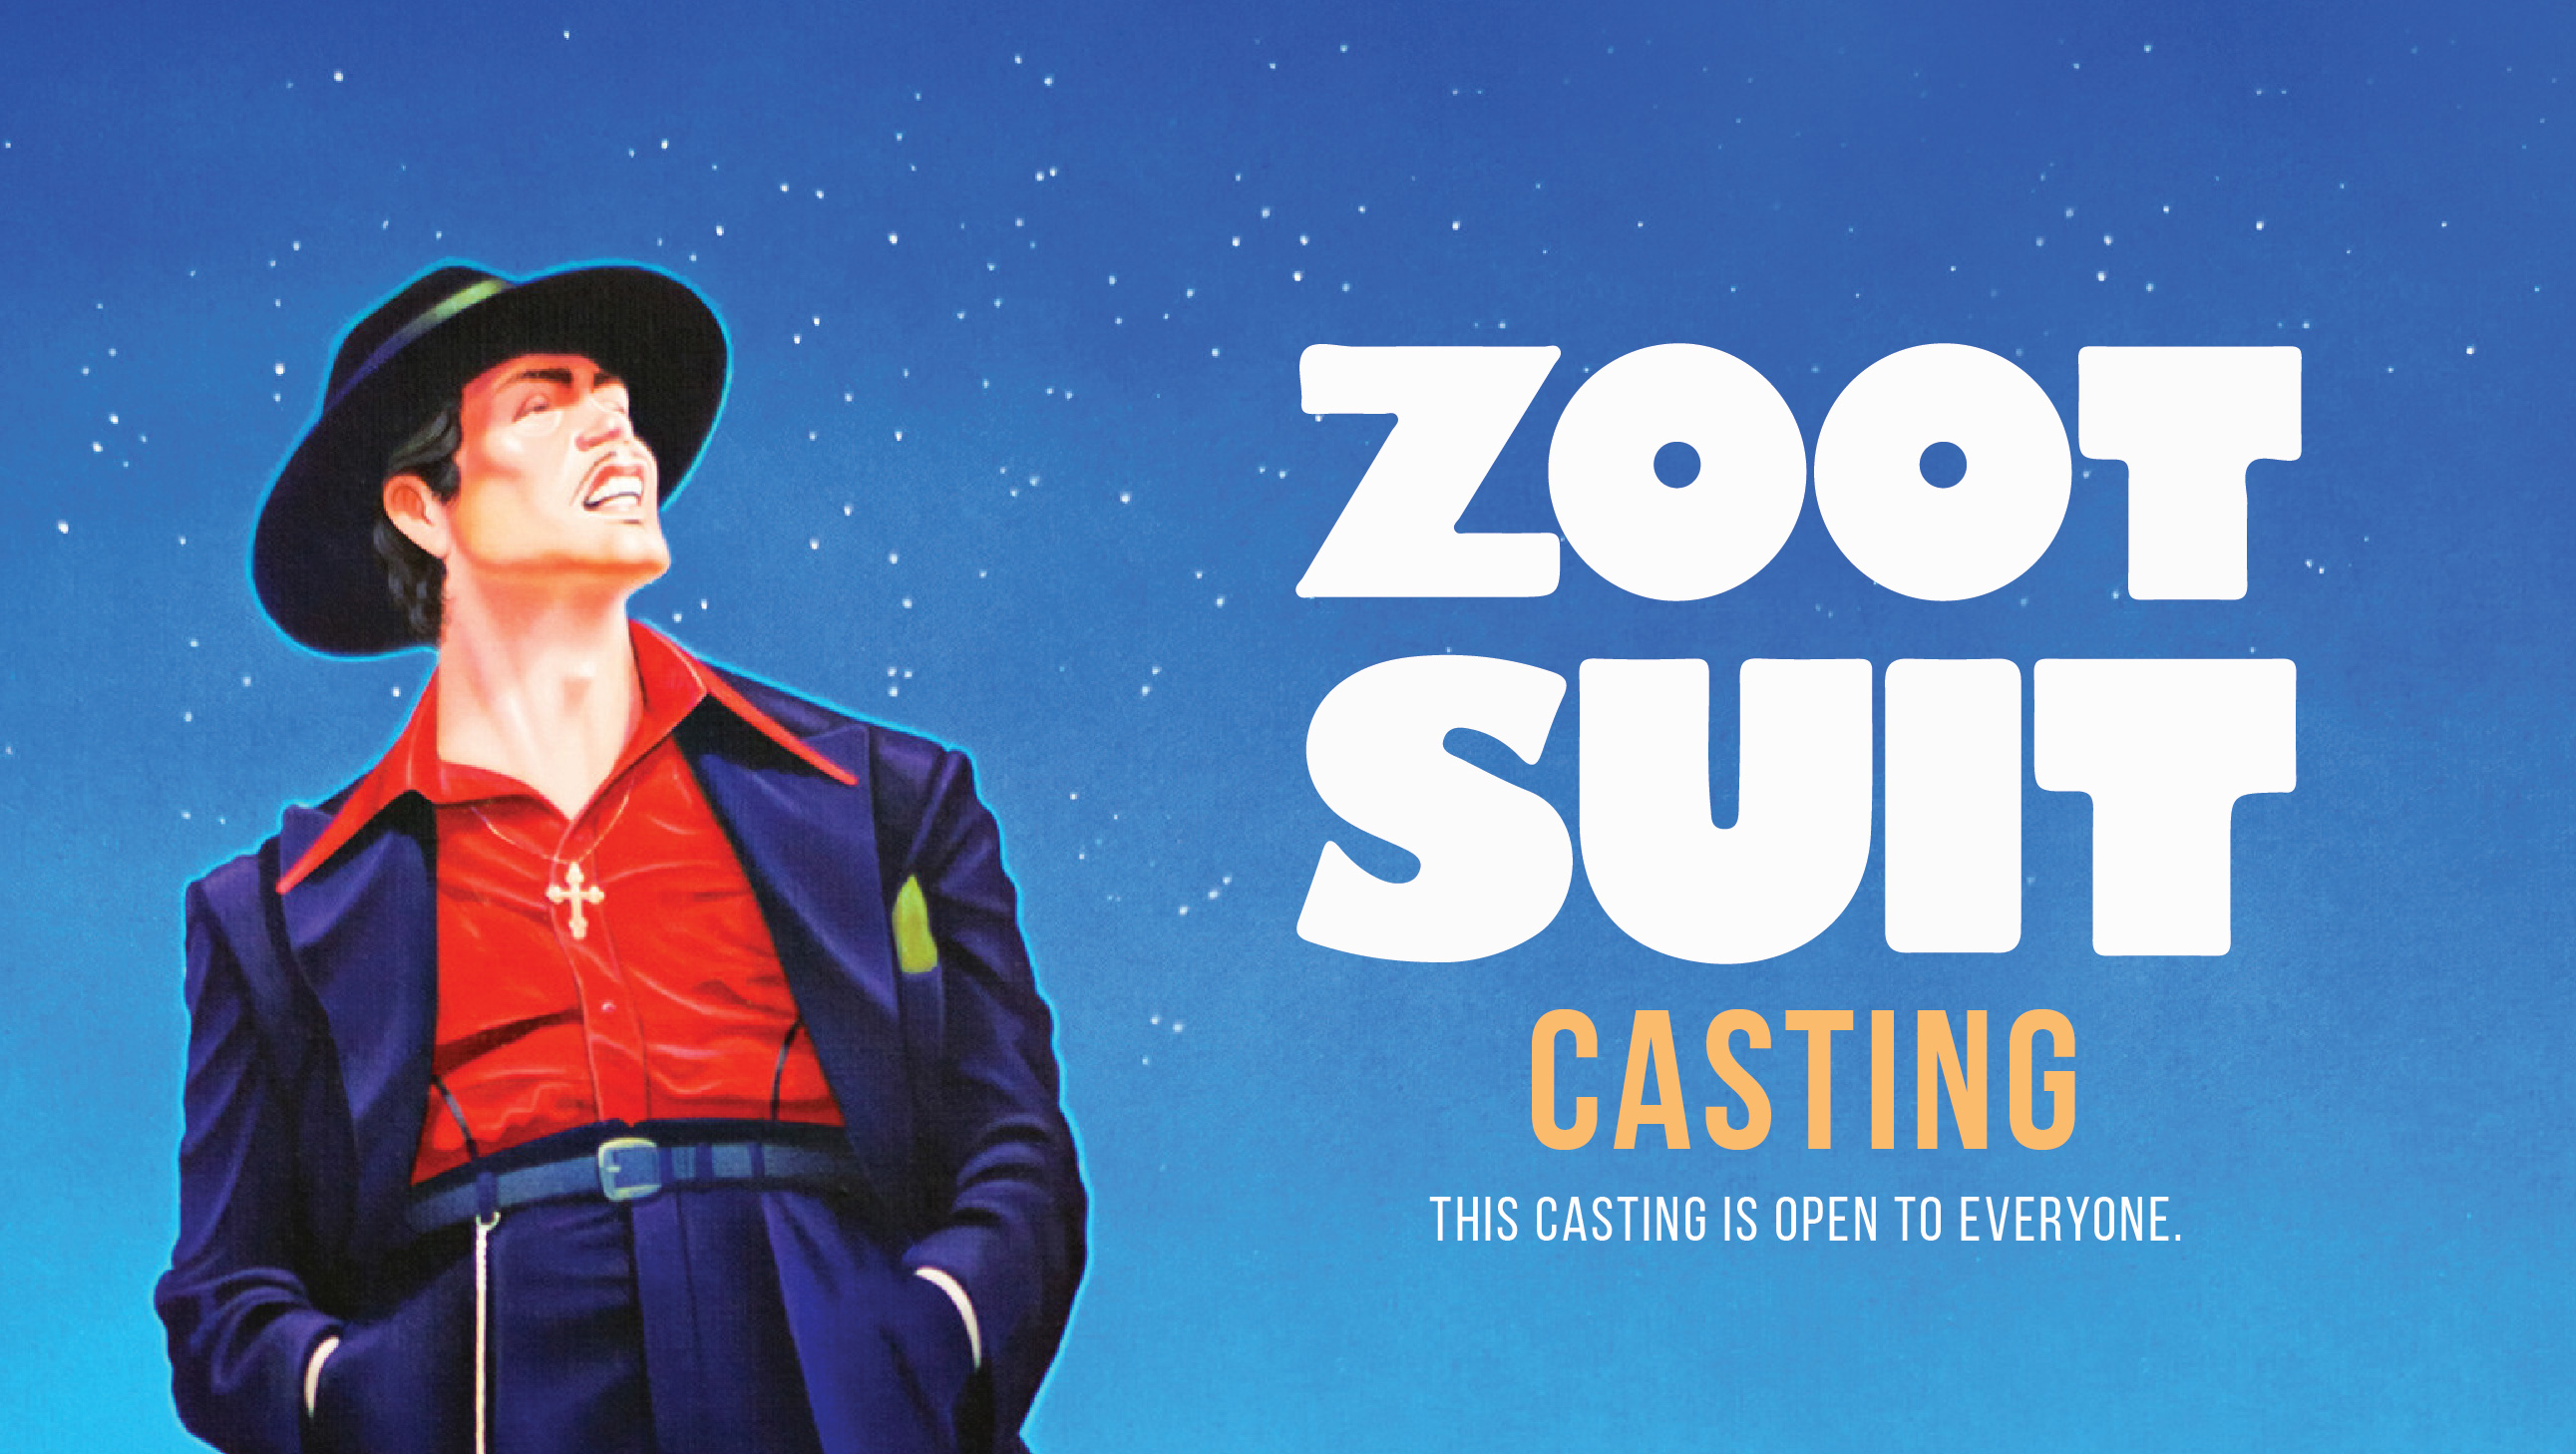 Casting for Zoot Suit